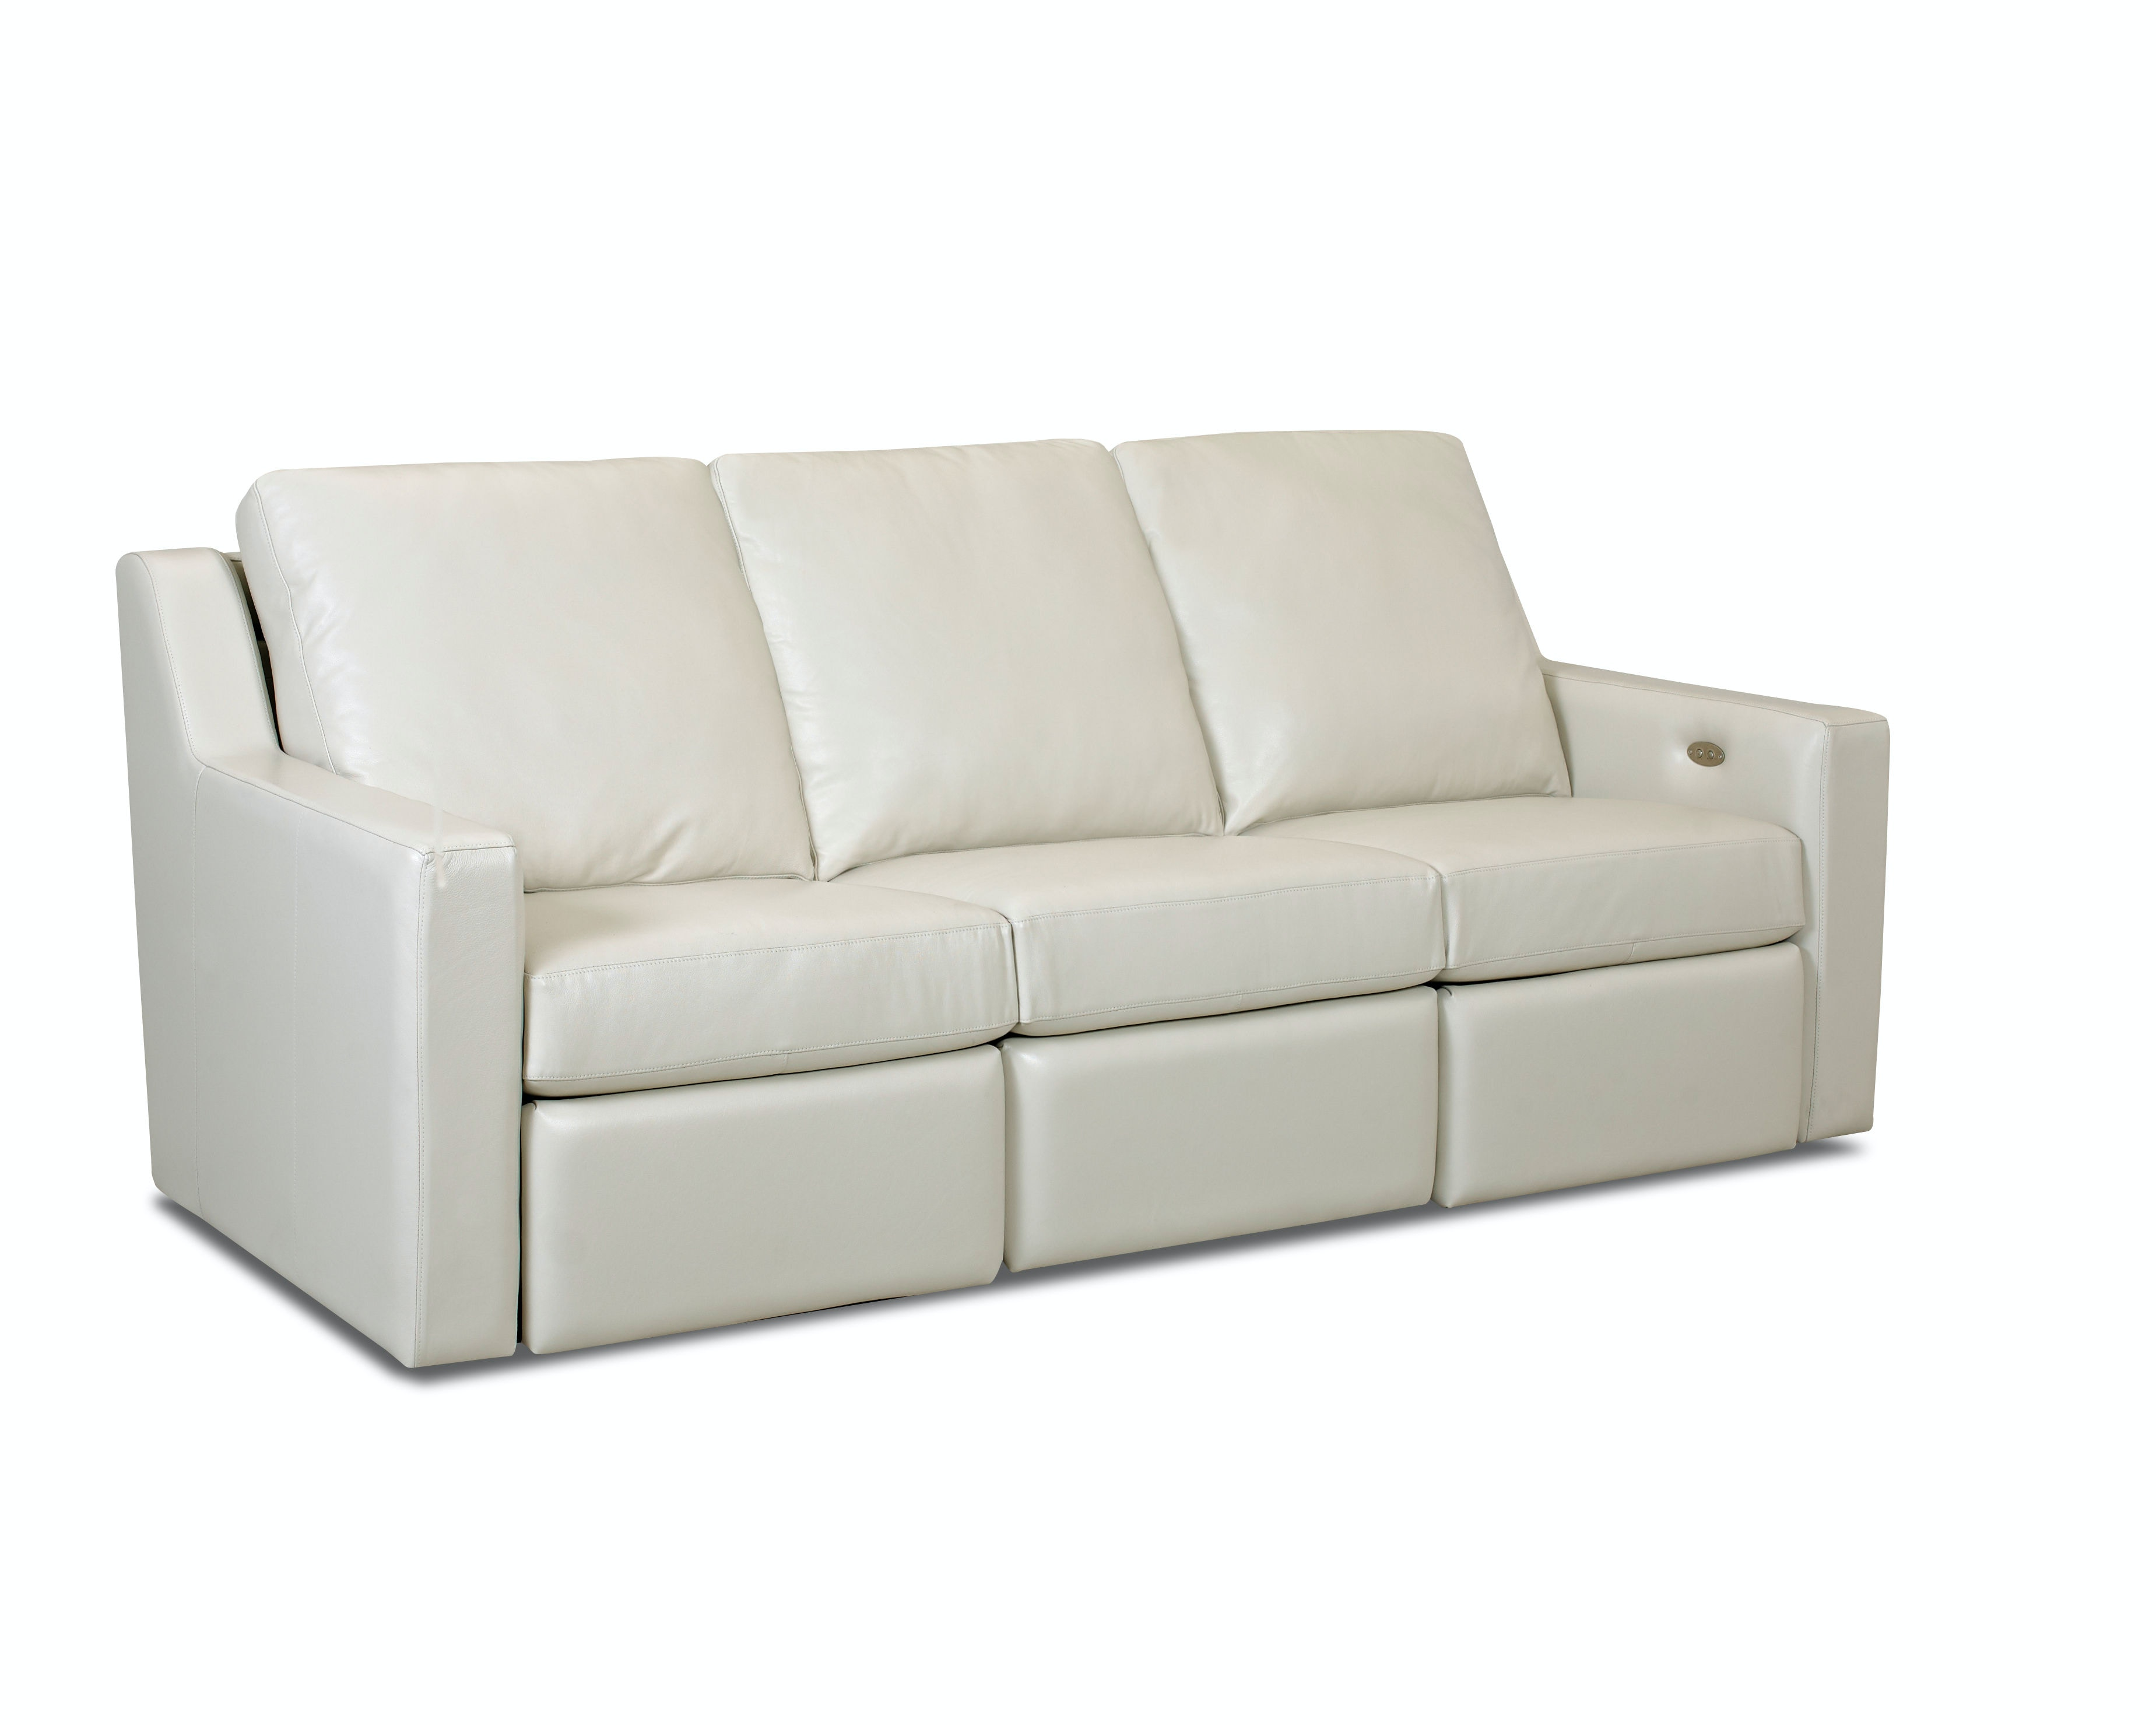 miramar leather sofa baxton studio keeney bed comfort design living room south village ii cl282pb